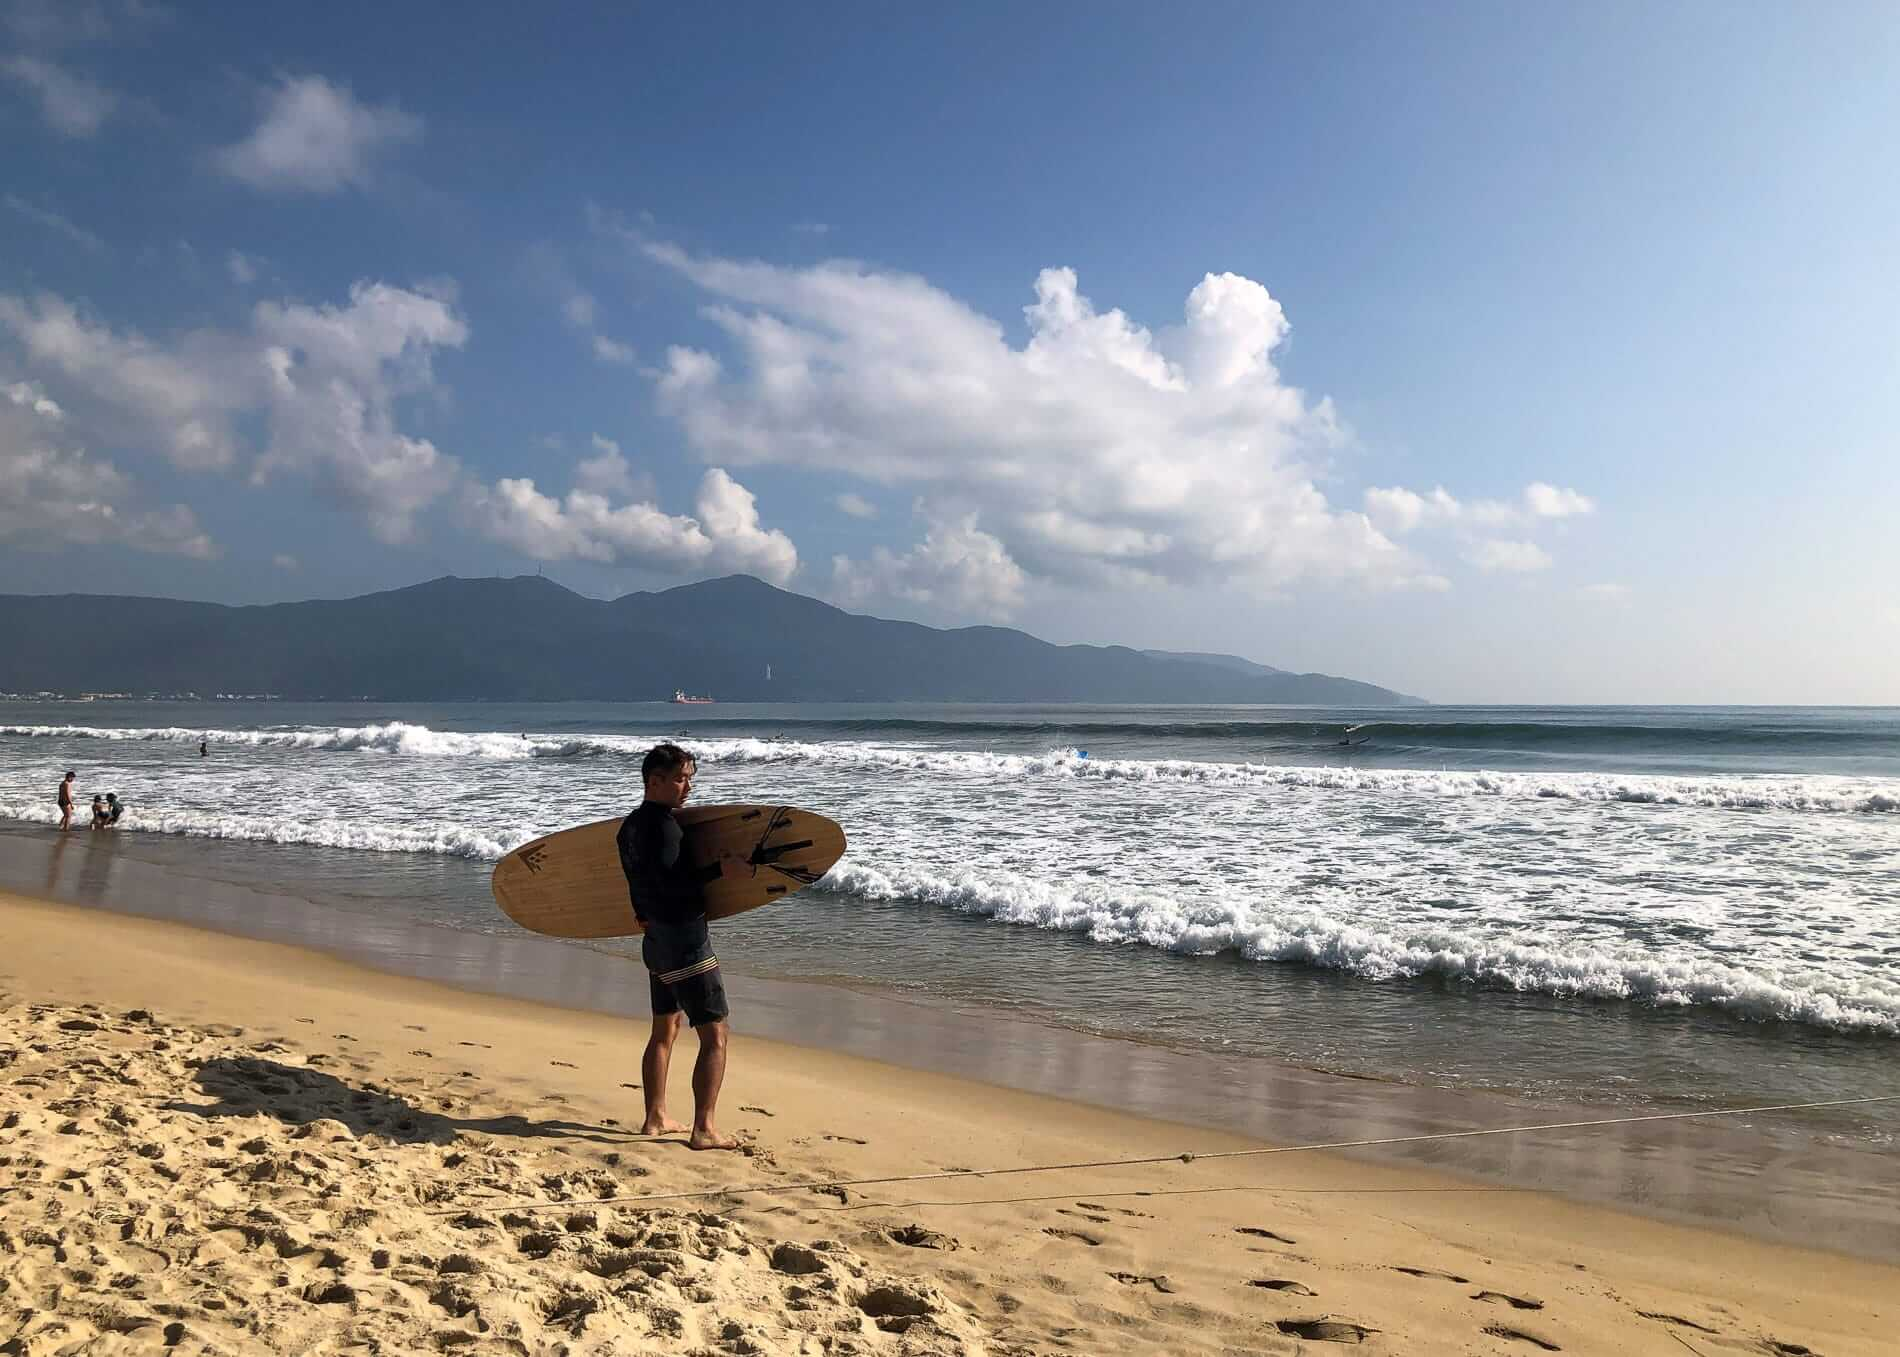 a surfer prepares to go surfing